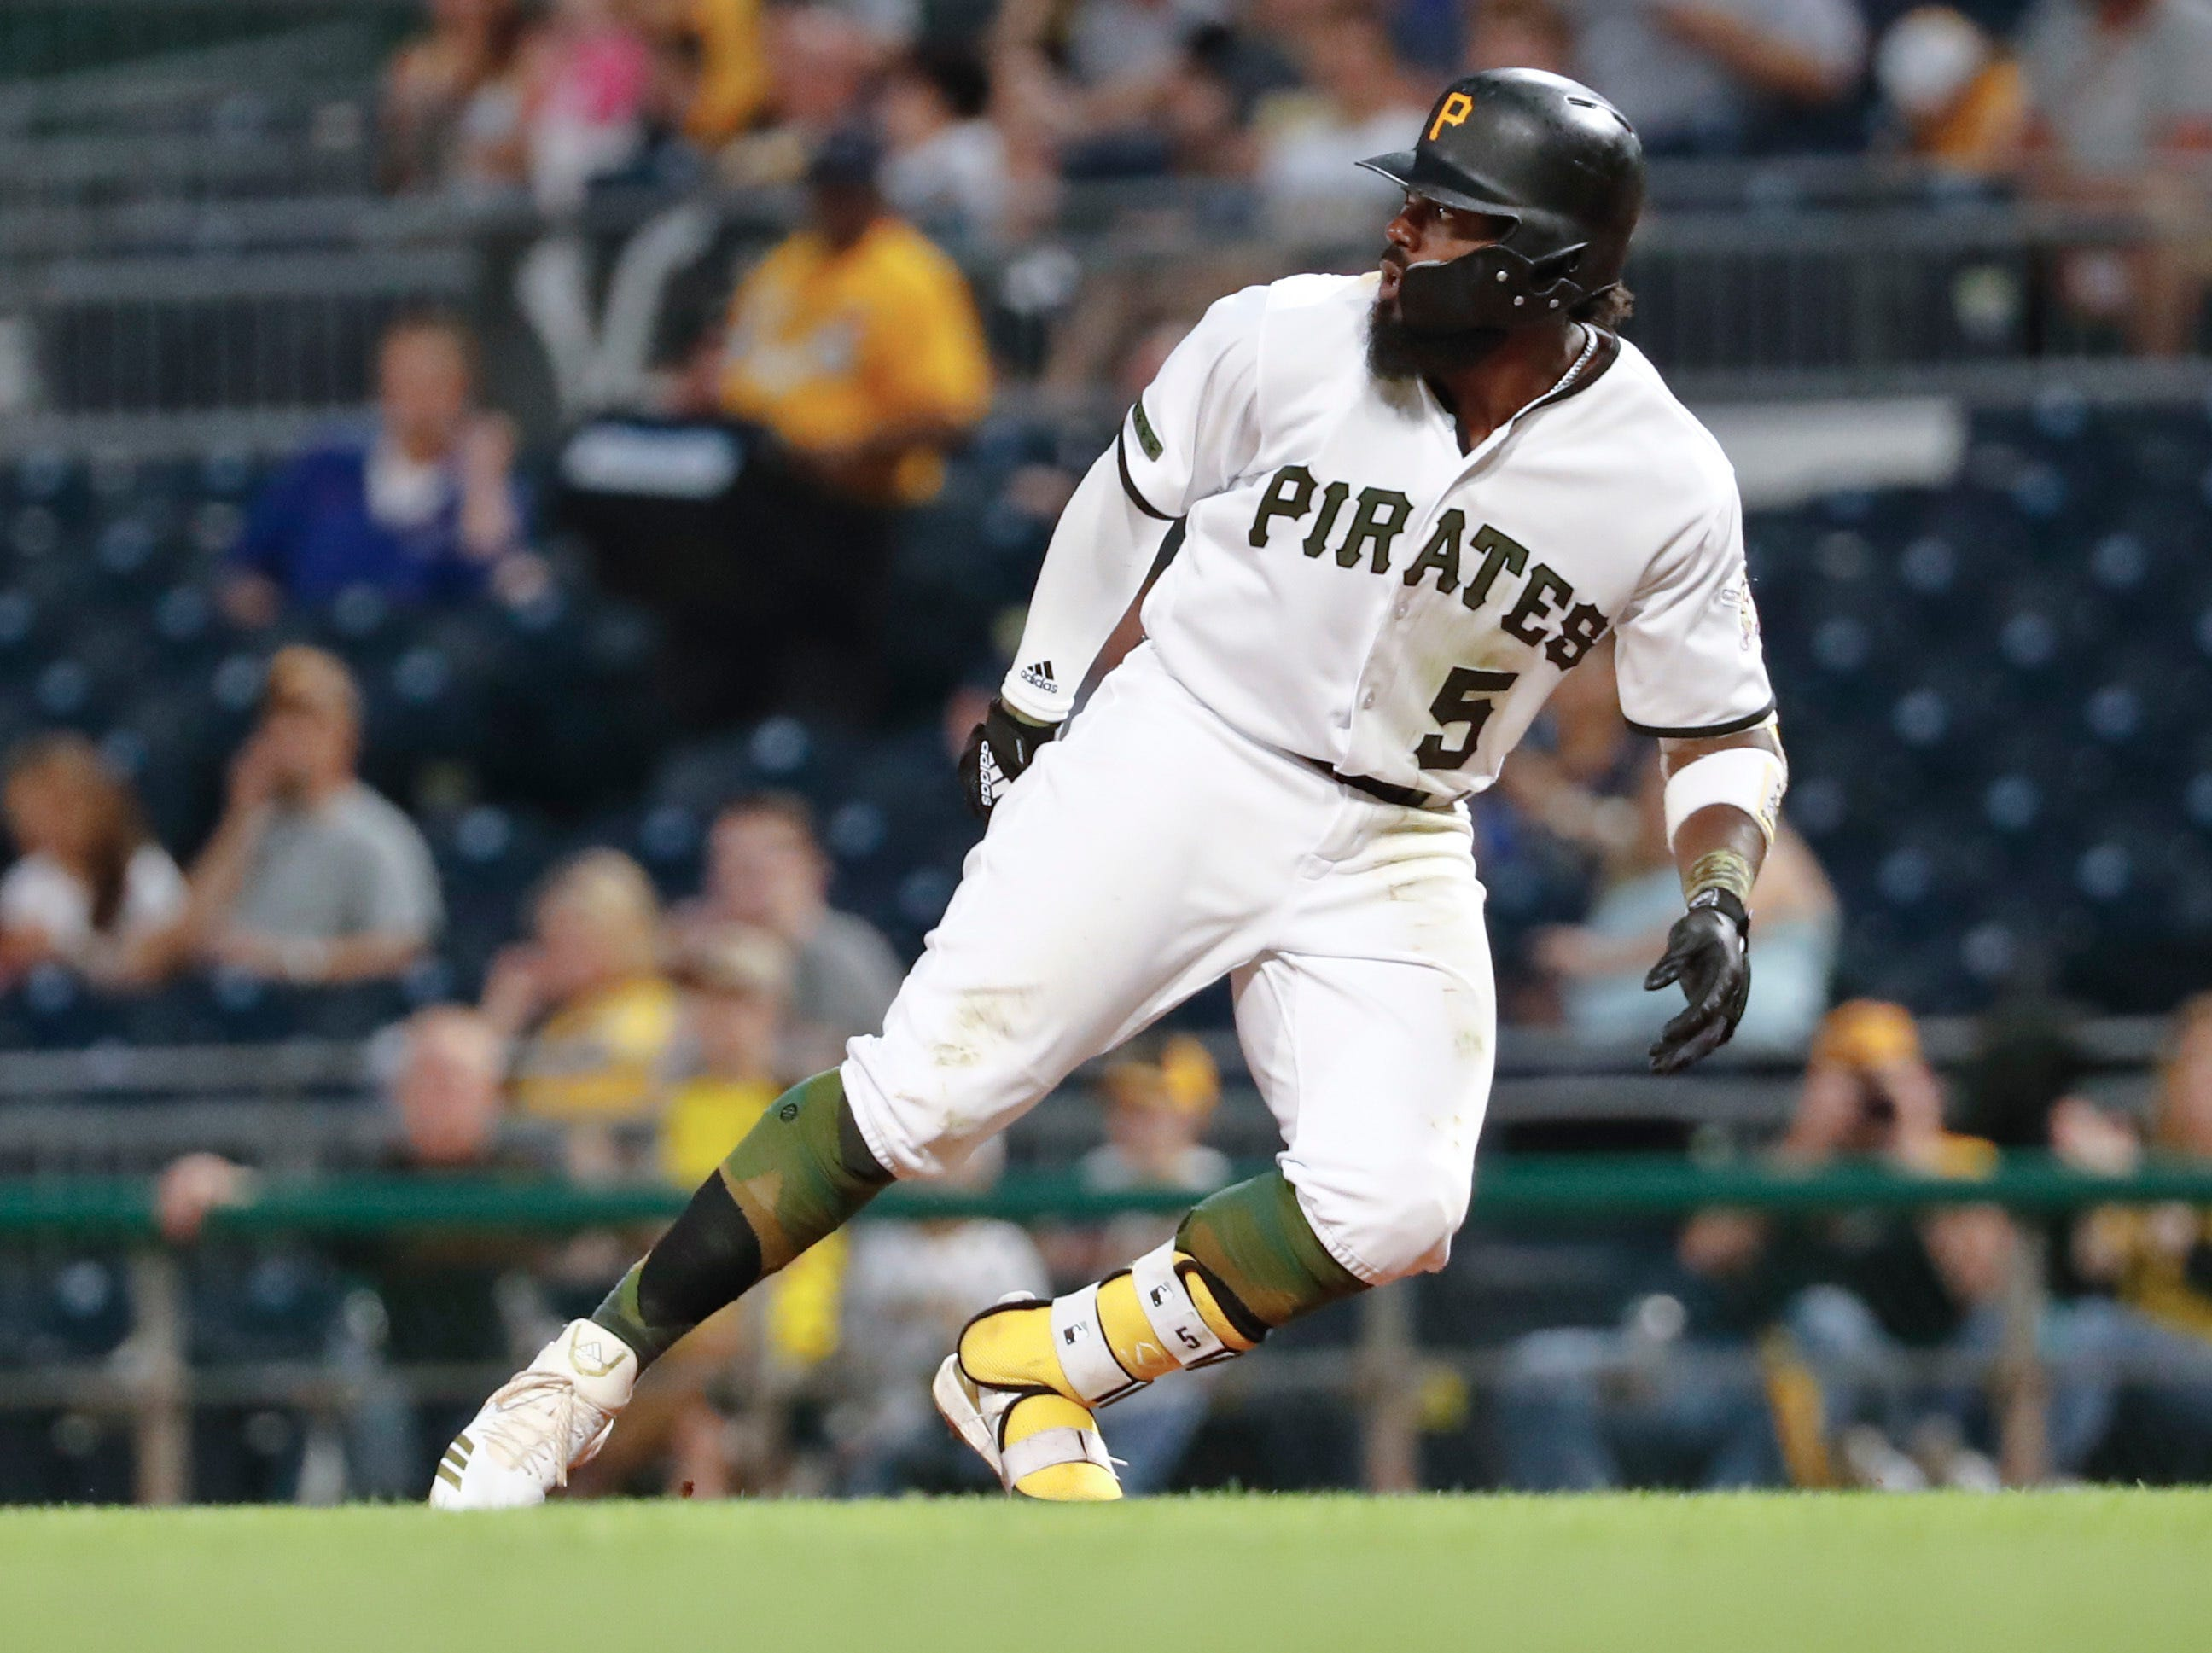 Pittsburgh Pirates' Josh Harrison retreats after rounding first during a baseball game against the Chicago Cubs, Thursday, Aug. 16, 2018, in Pittsburgh.